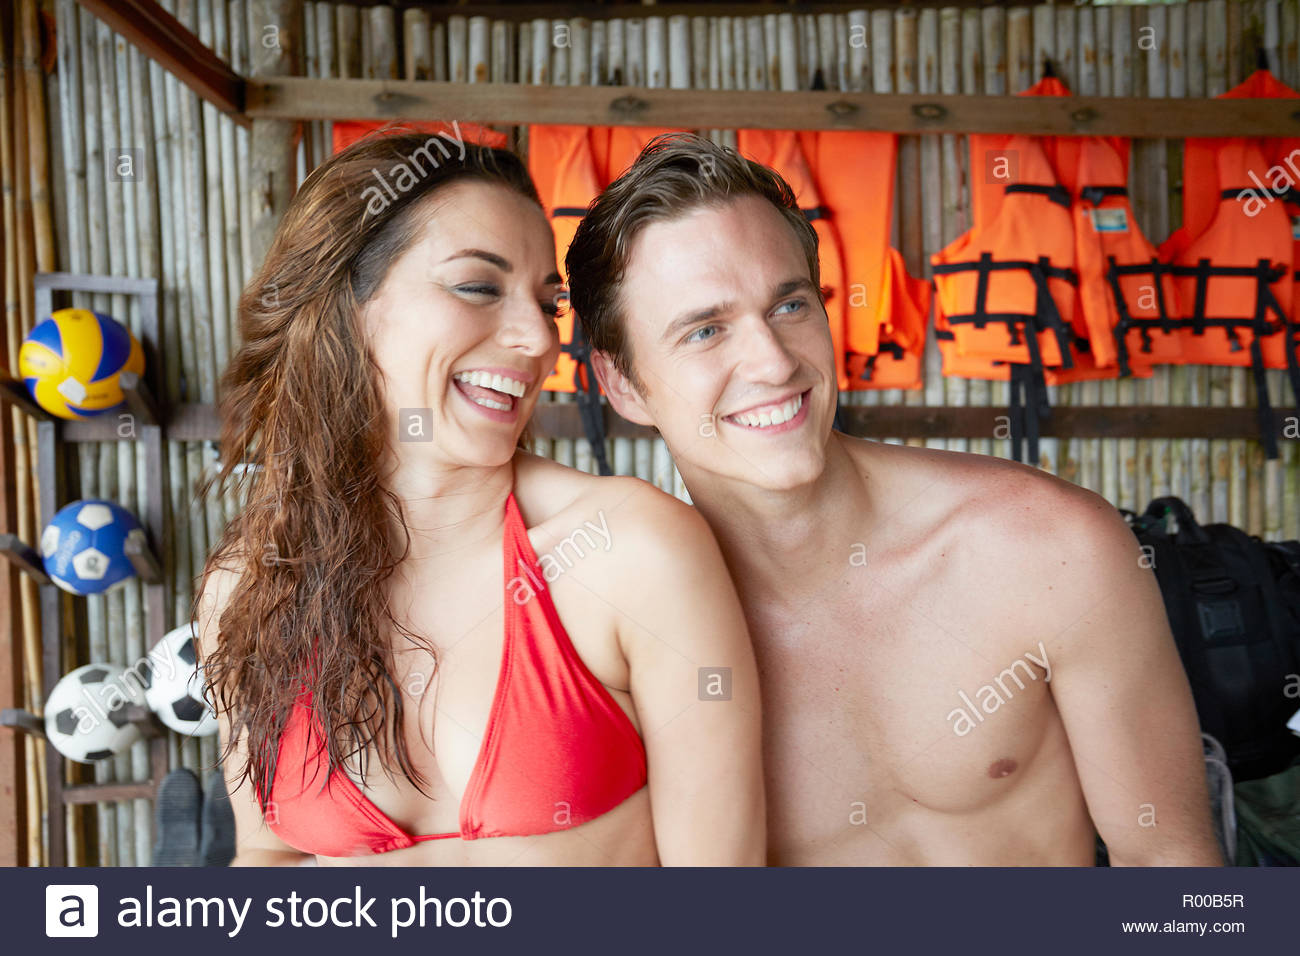 Young couple smiling in front of hanging gilets Photo Stock